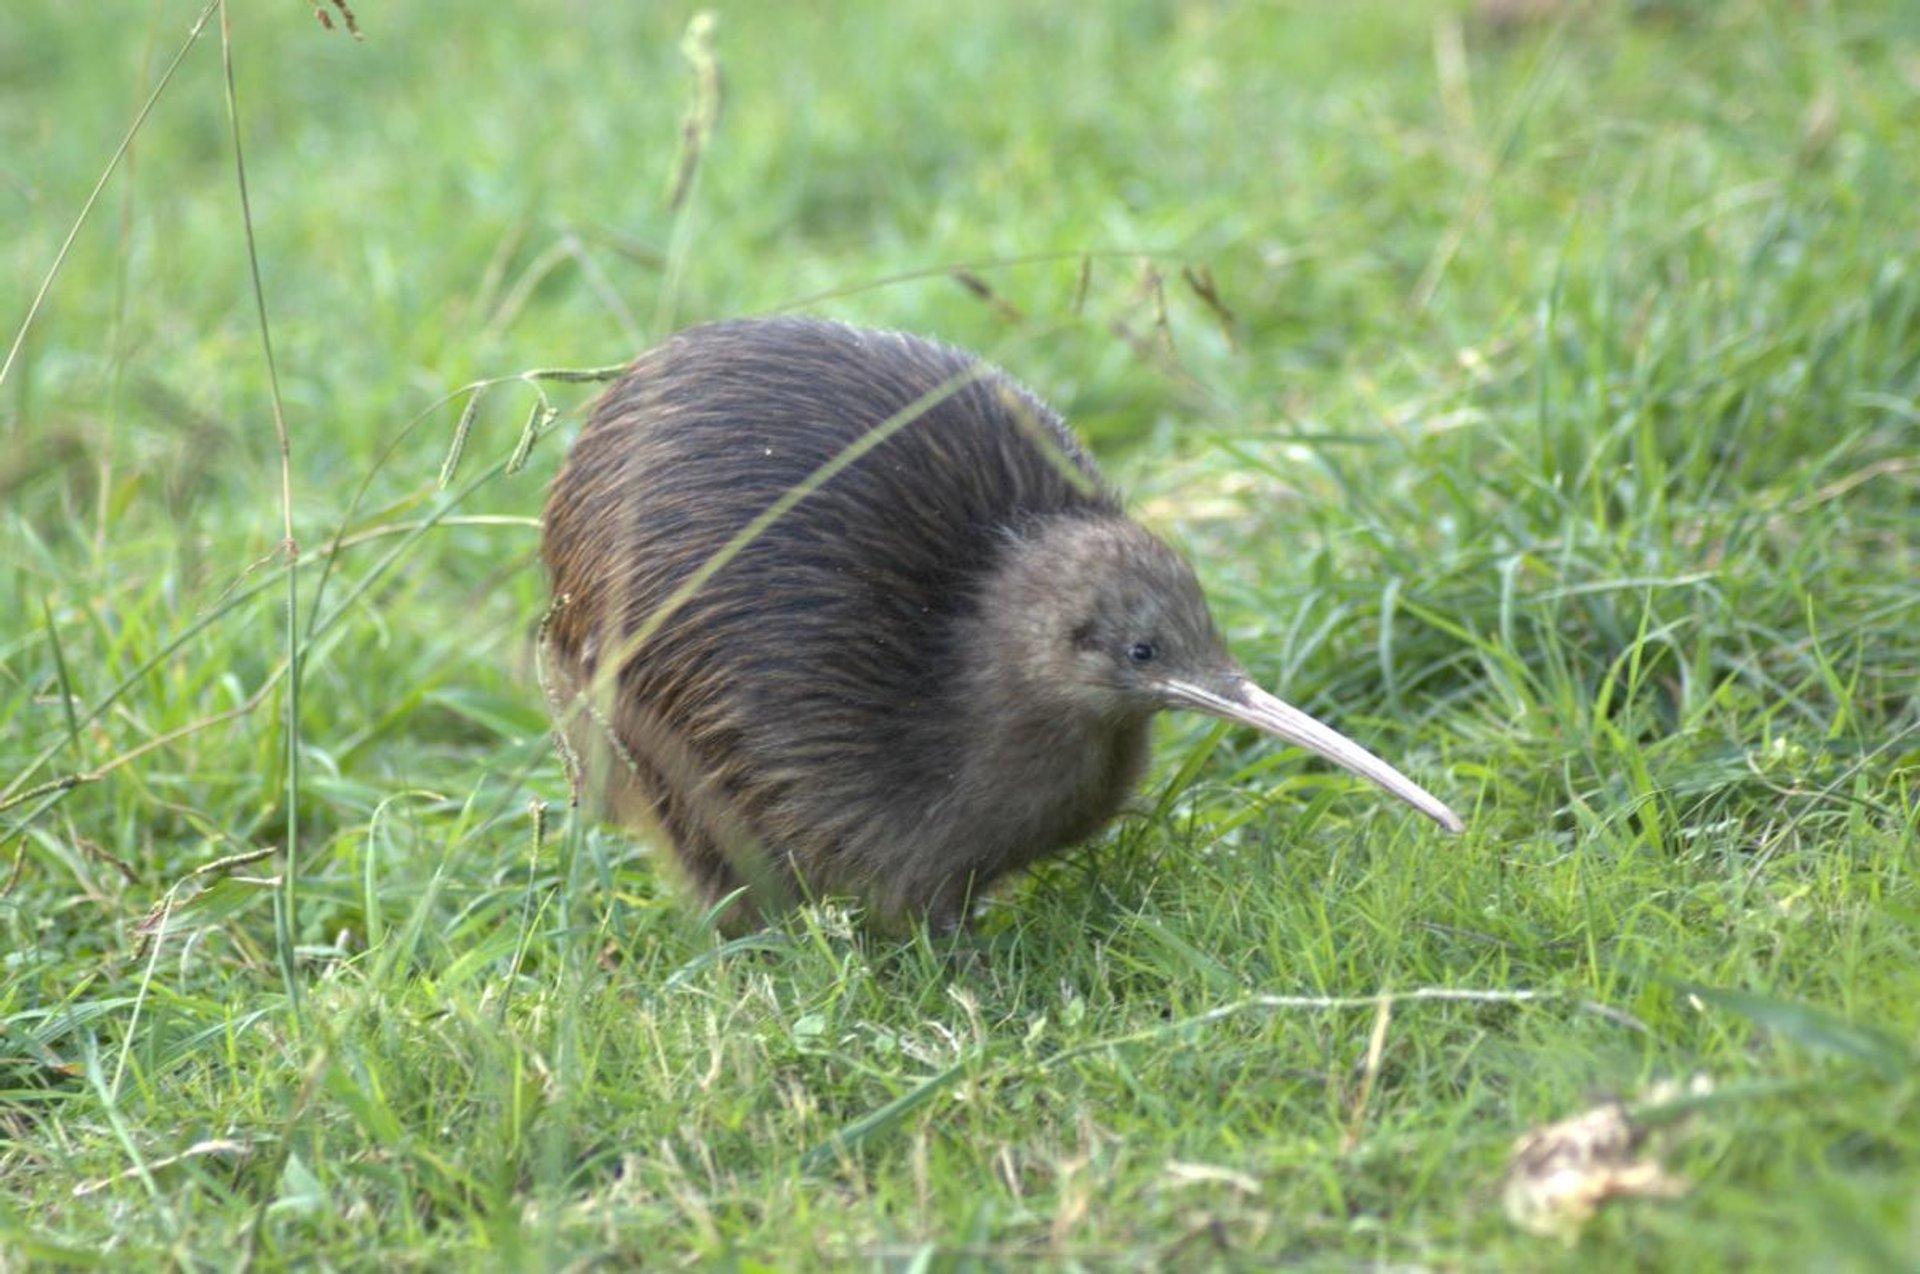 Kiwis' Breeding Season in New Zealand - Best Time